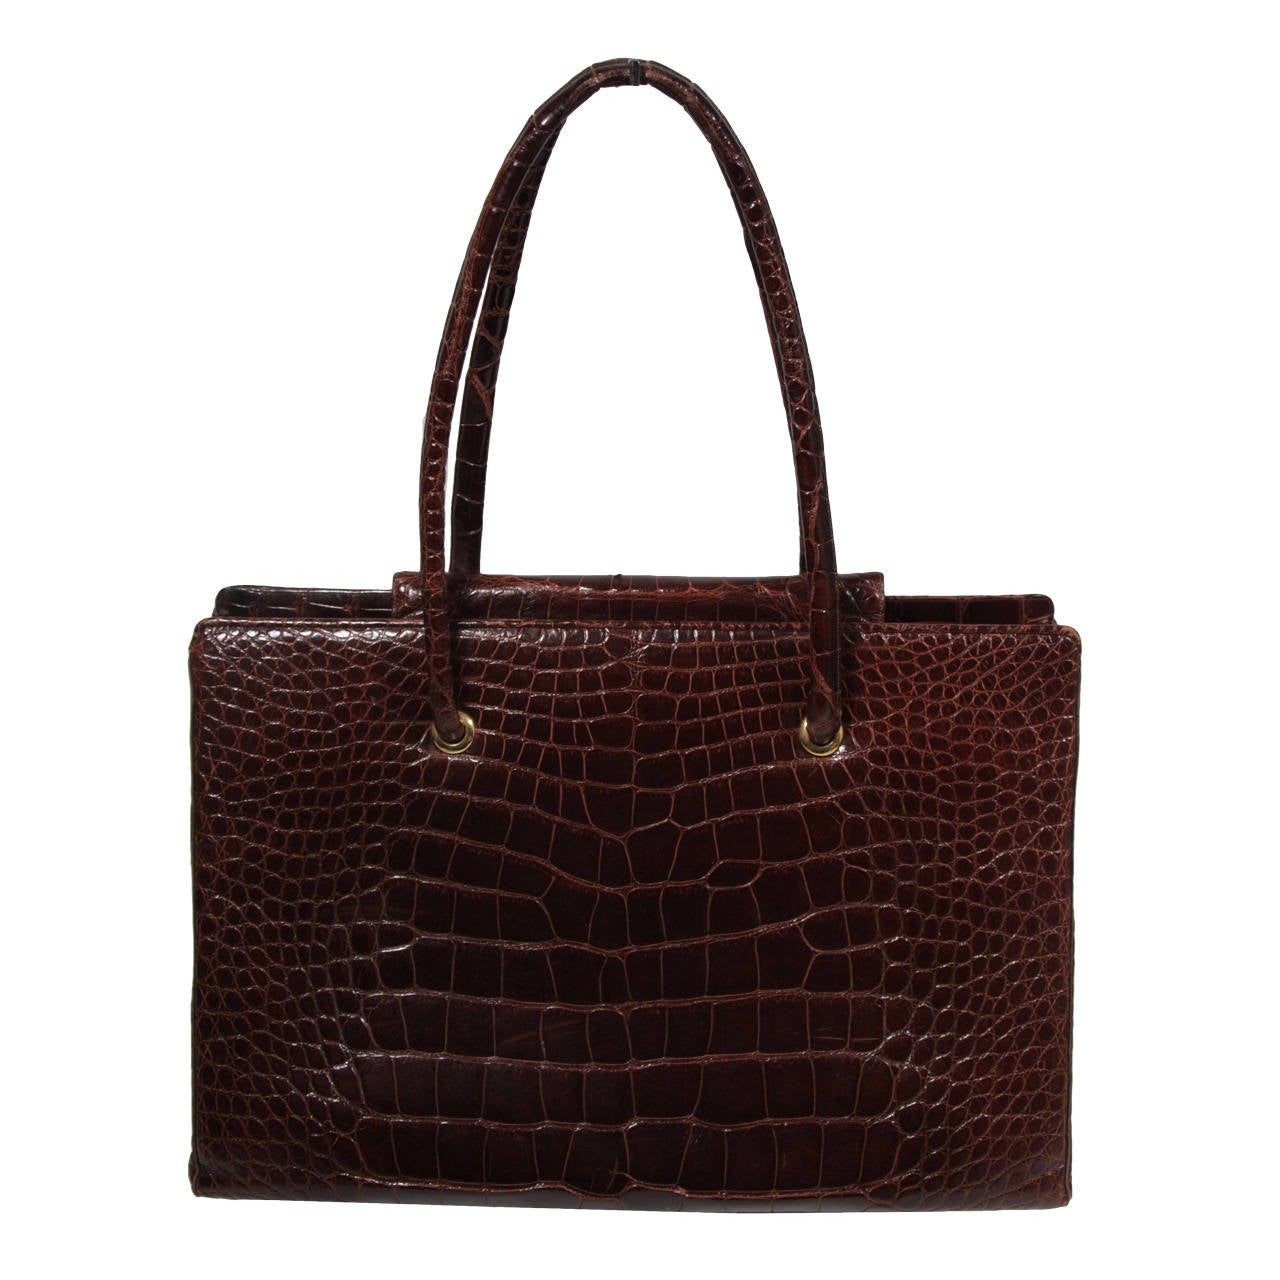 Judith Leiber Extra Large Chocolate Crocodile Shoulder Bag with Snap Top 1